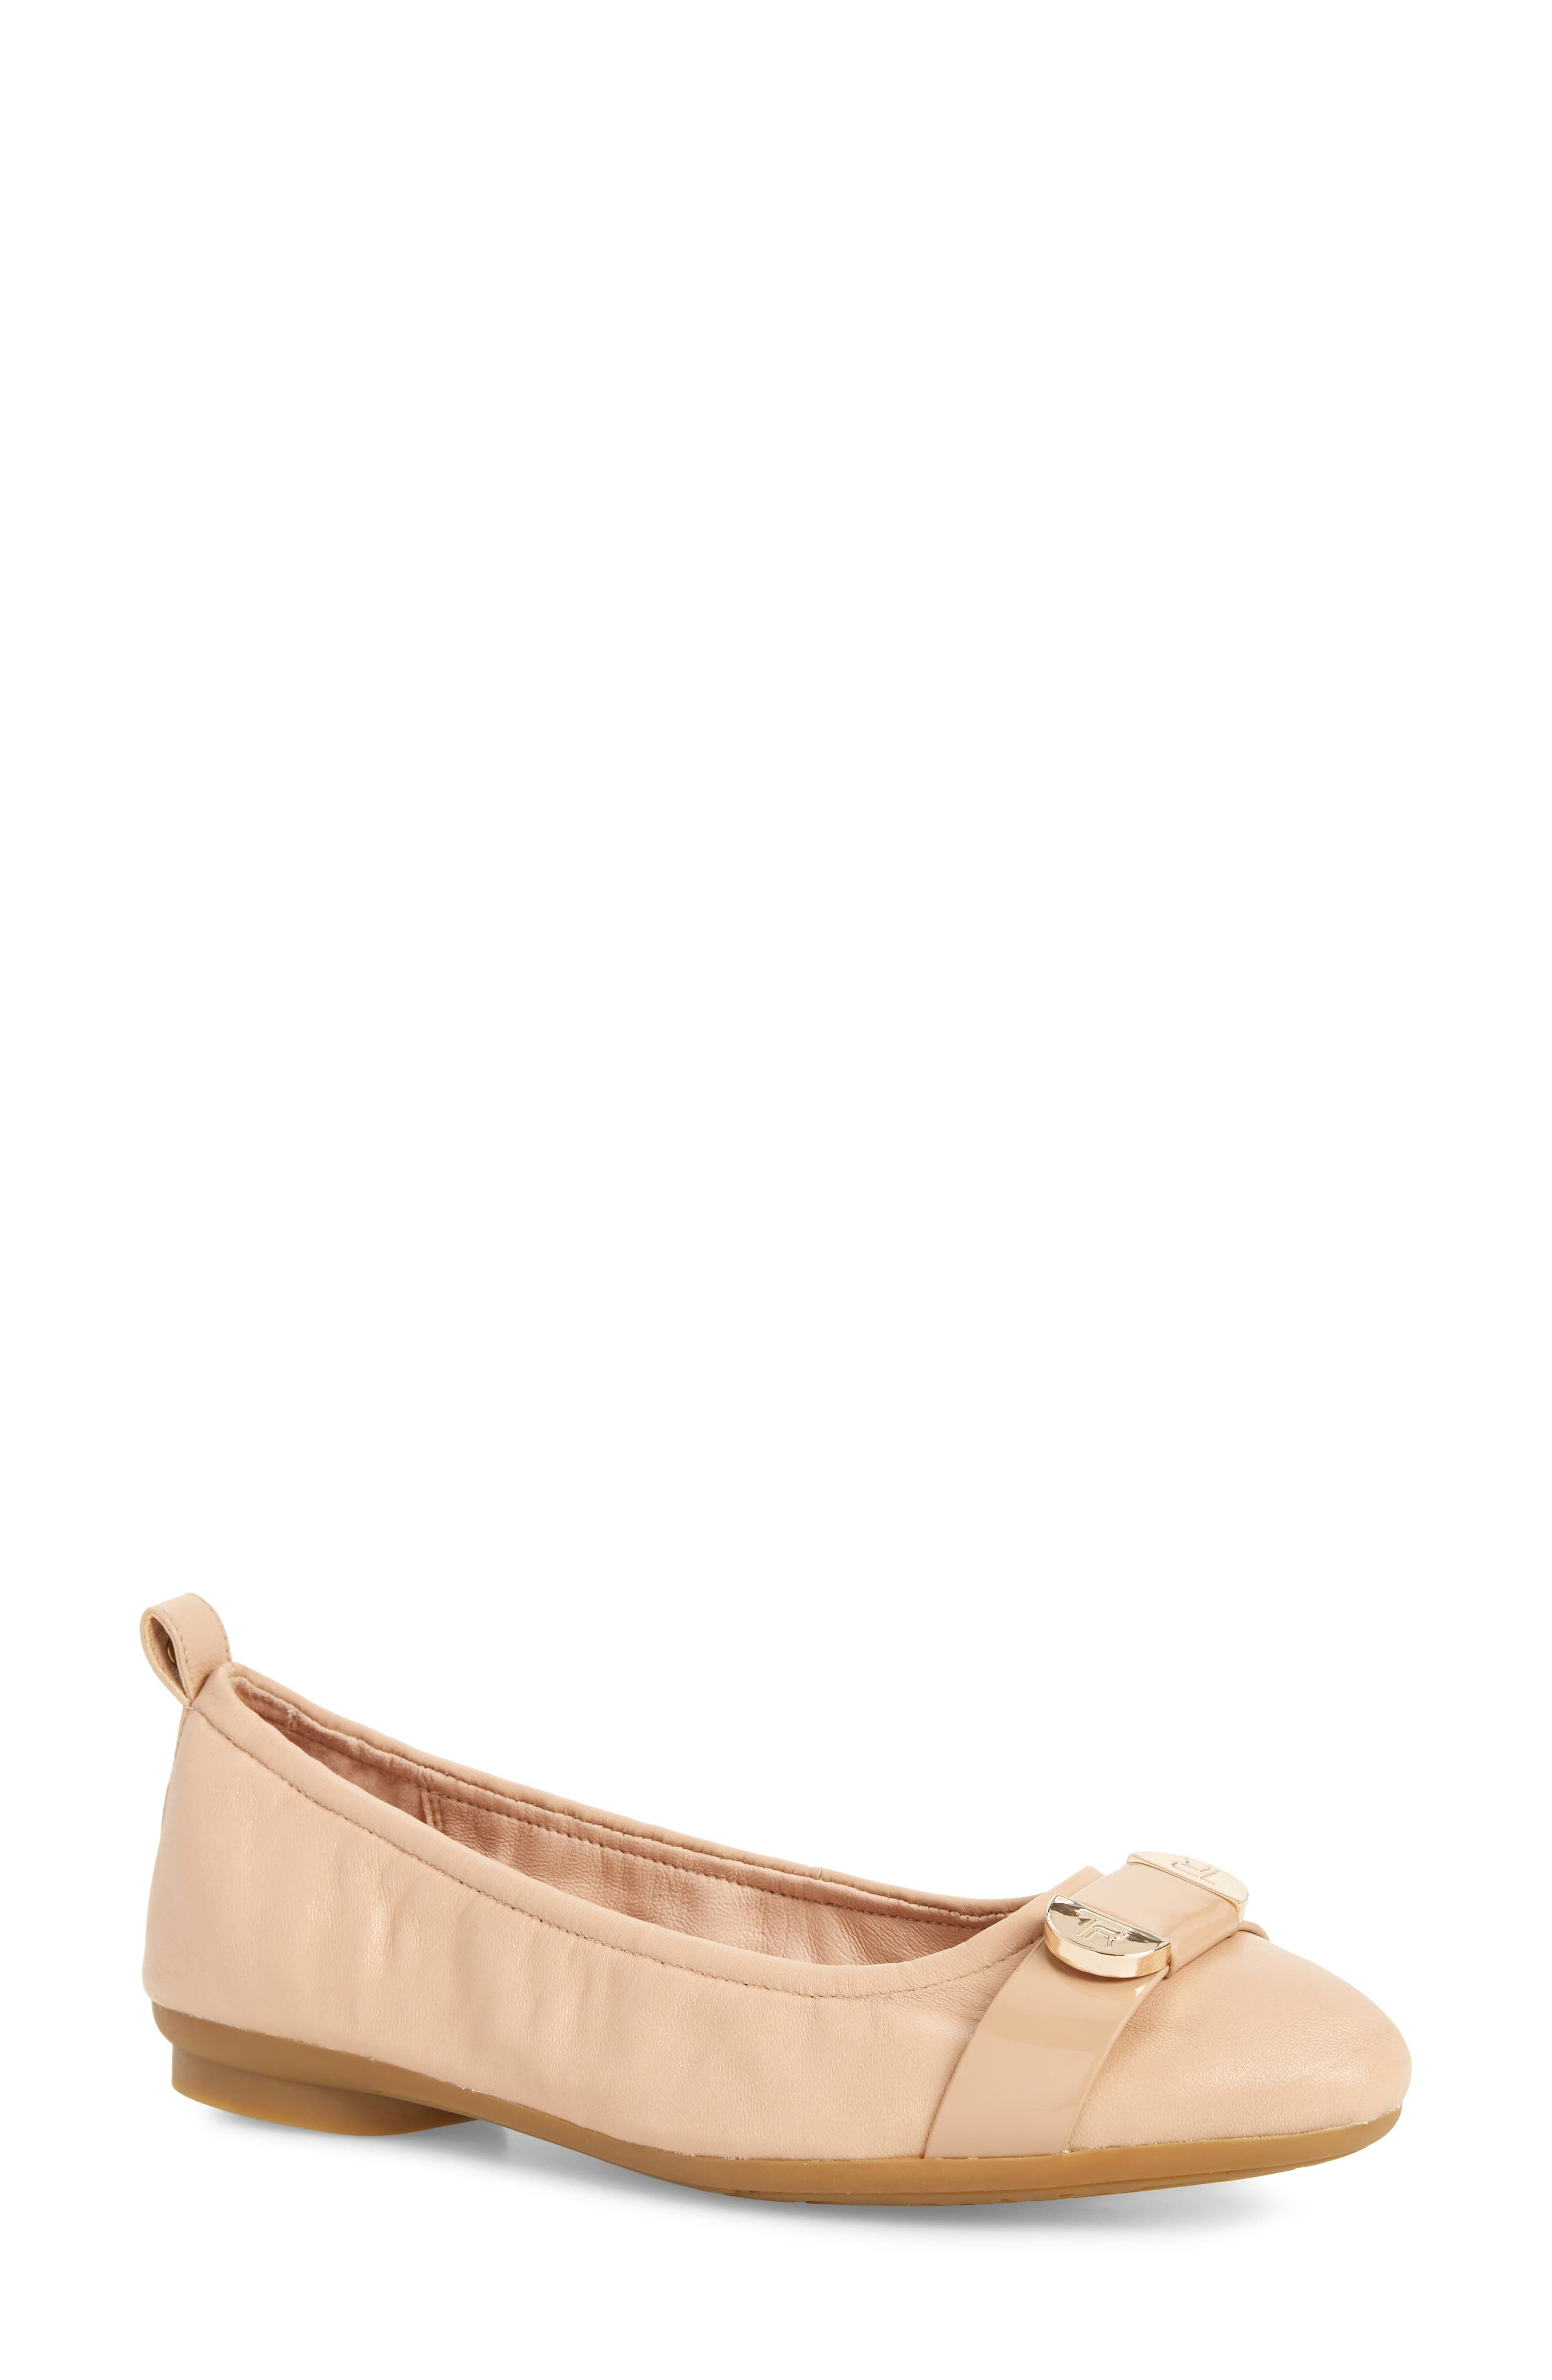 Abriana Ballet Flat,                         Main,                         color, Nude Leather